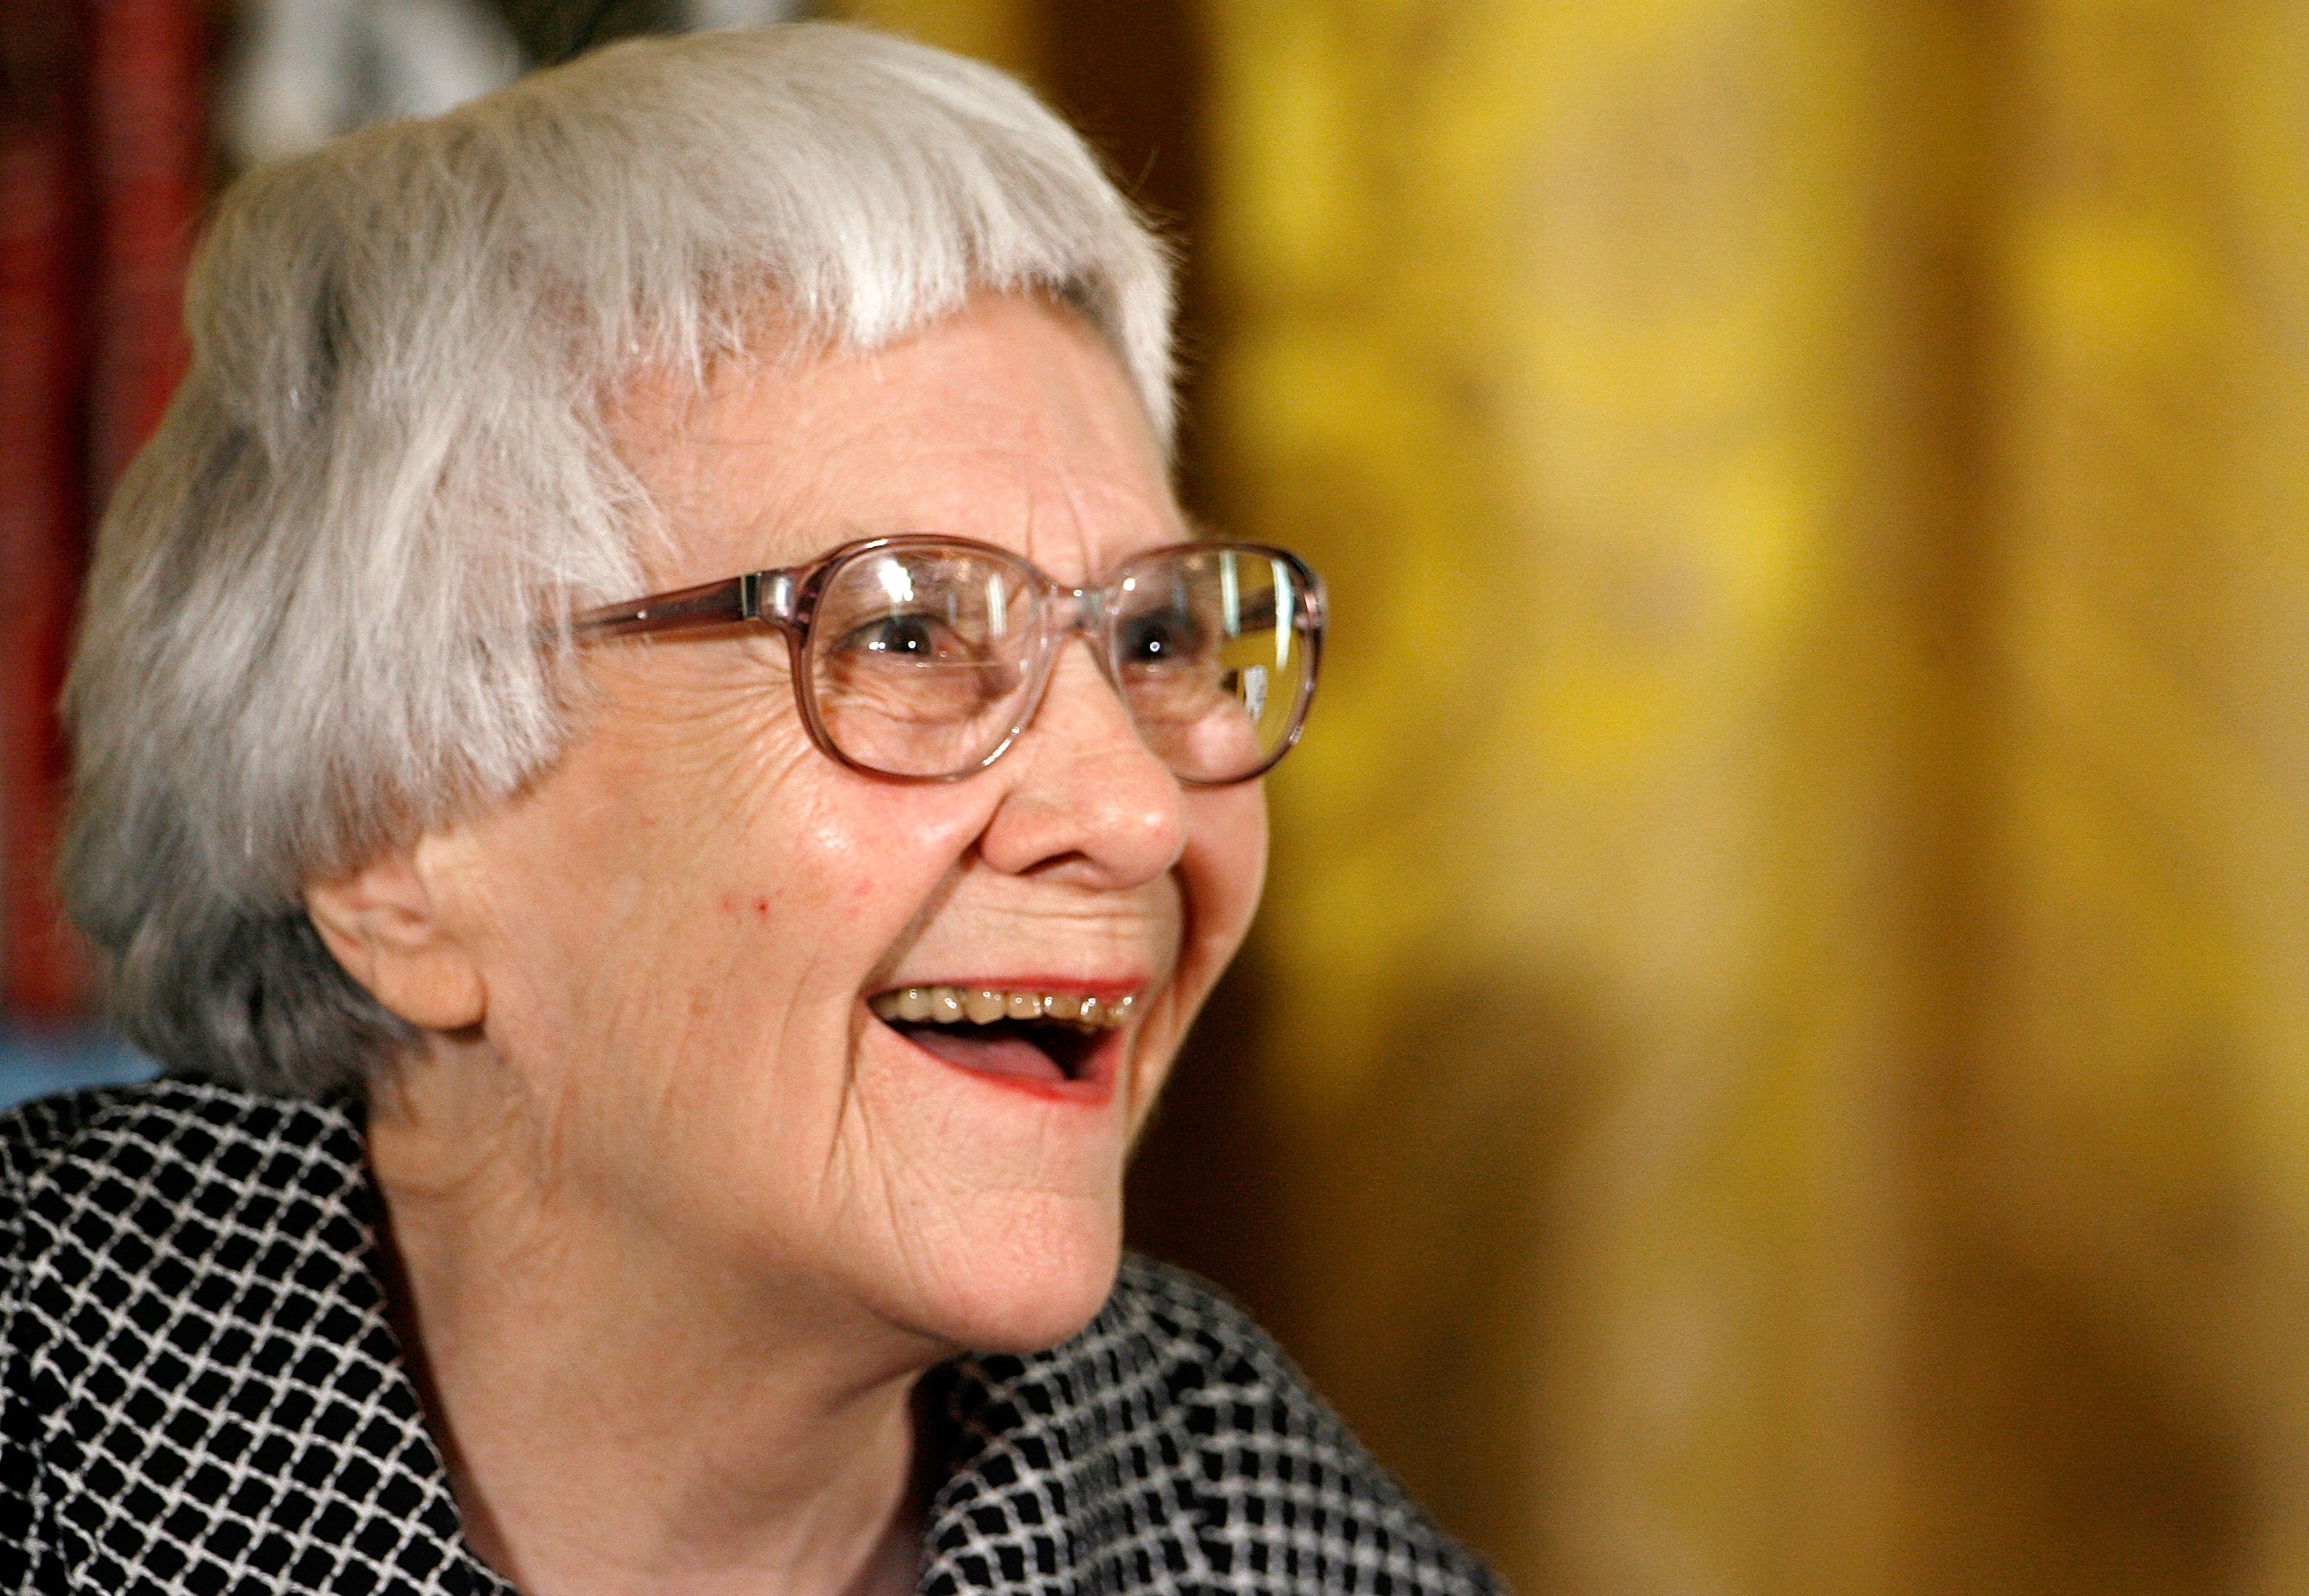 Pulitzer Prize winner and To Kill A Mockingbird author Harper Lee smiles before receiving the 2007 Presidential Medal of Freedom at the White House on Nov. 5, 2007 in Washington, DC.